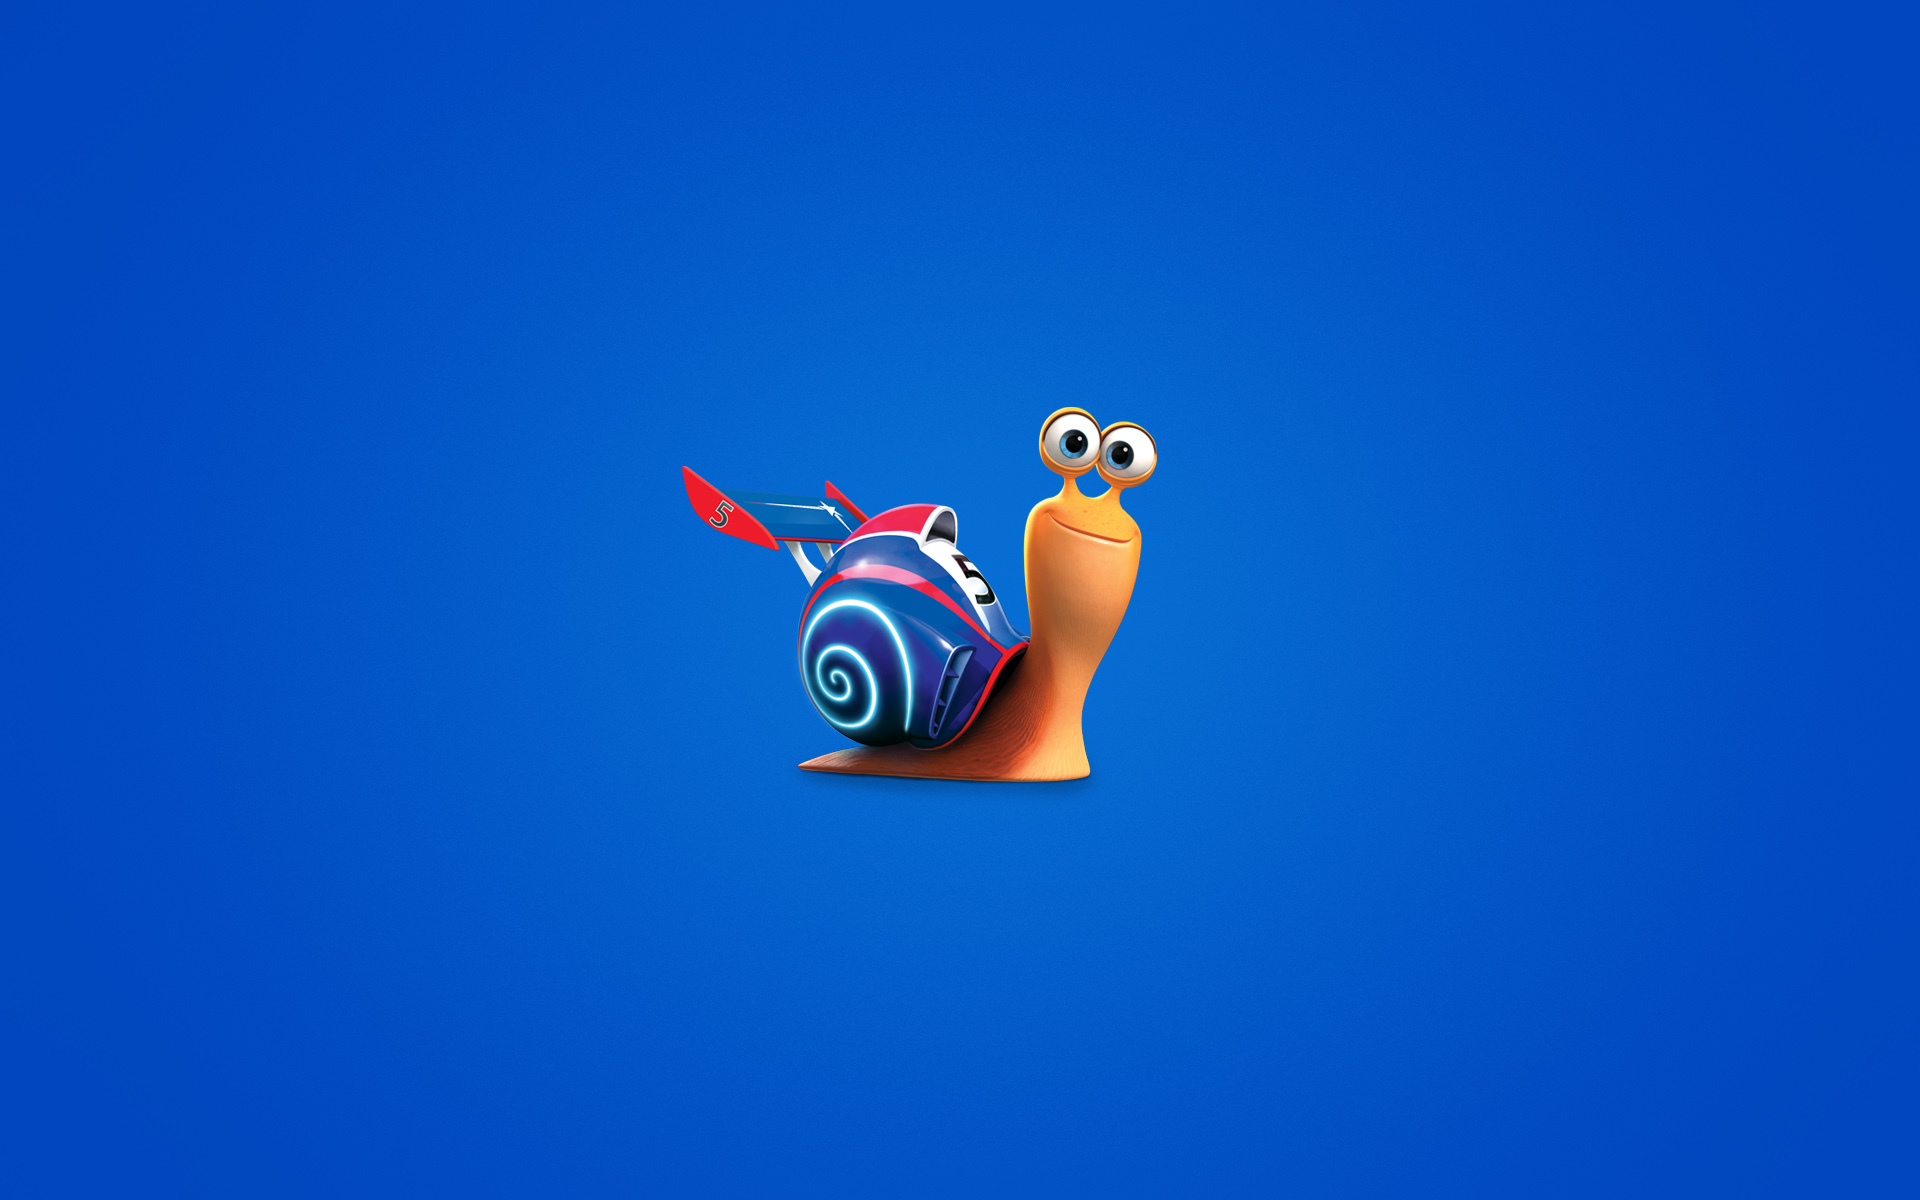 download turbo movie 36766 1920x1200 px high definition wallpaper.